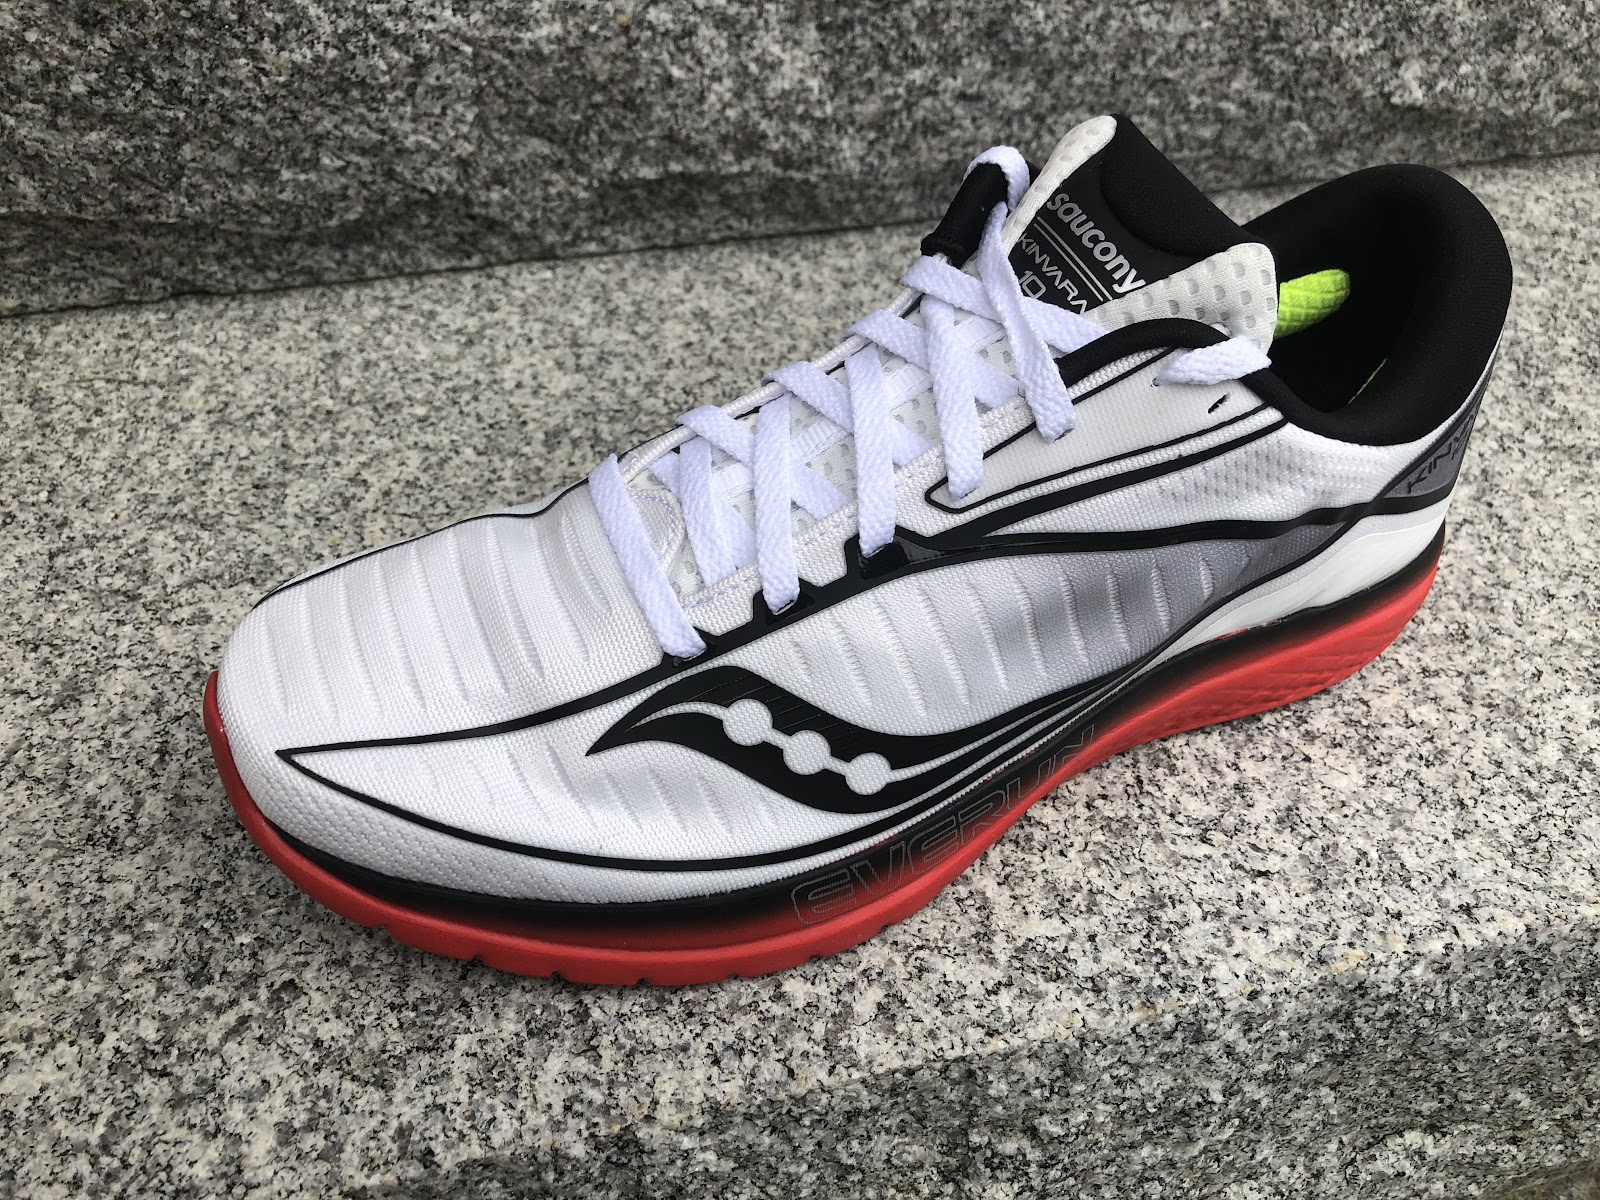 89853567783dd The KInvara 9 toned down the increasingly race fit type upper somewhat and  included a softer stretchier forefoot upper and got closer to the originals